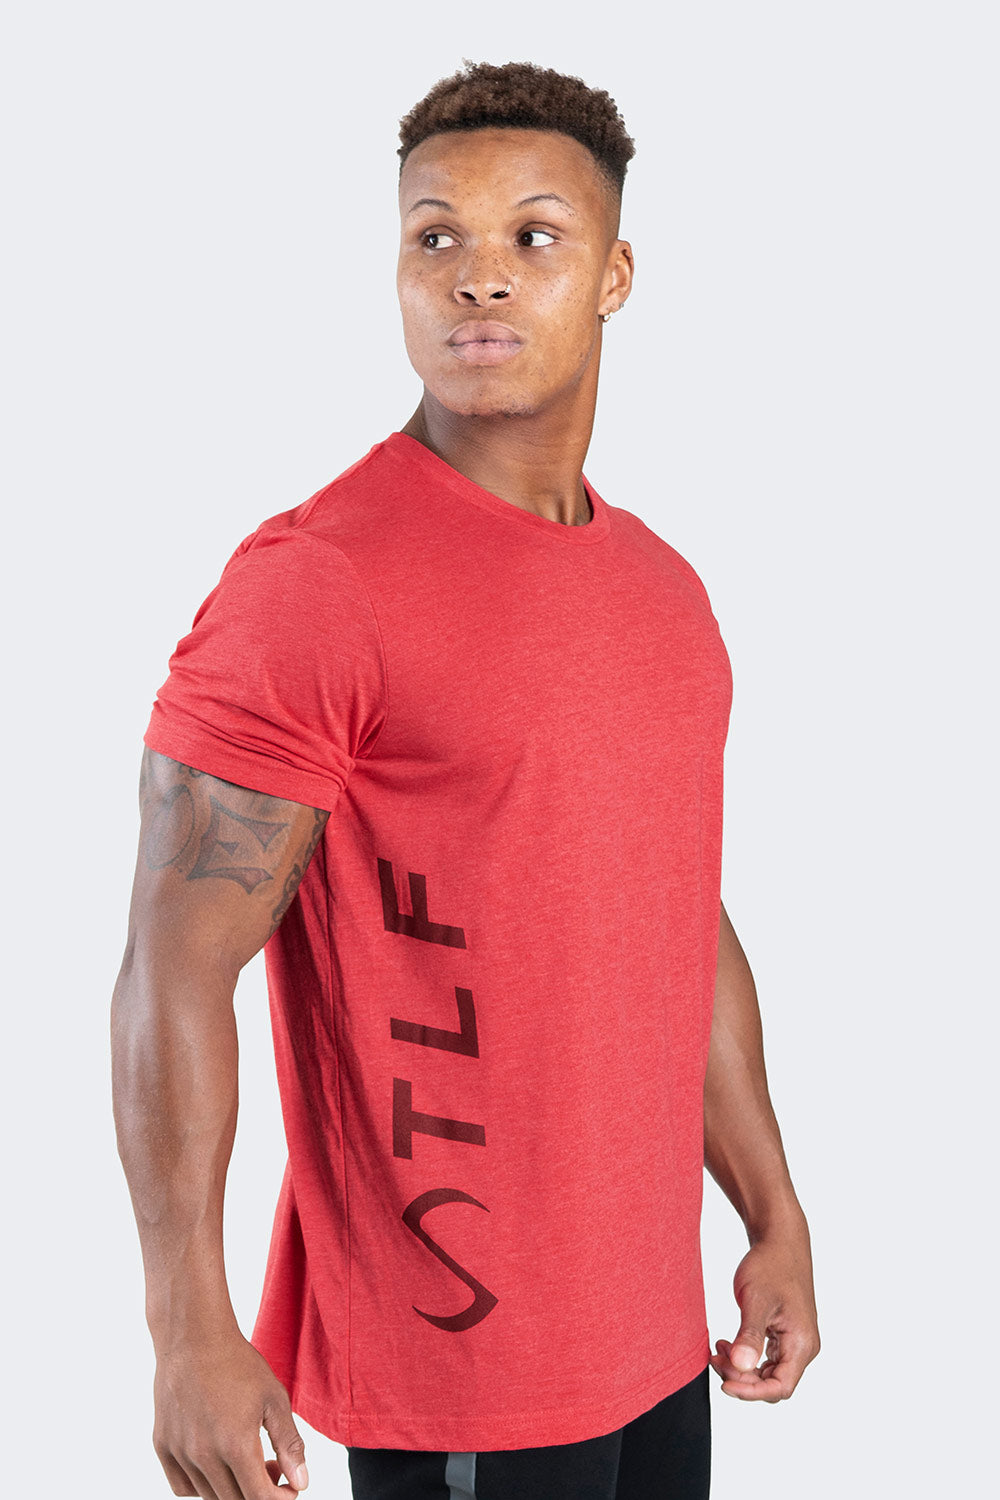 TLF Descend T-Shirt - GRAPHIC T-SHIRTS - TLF Apparel   Take Life Further